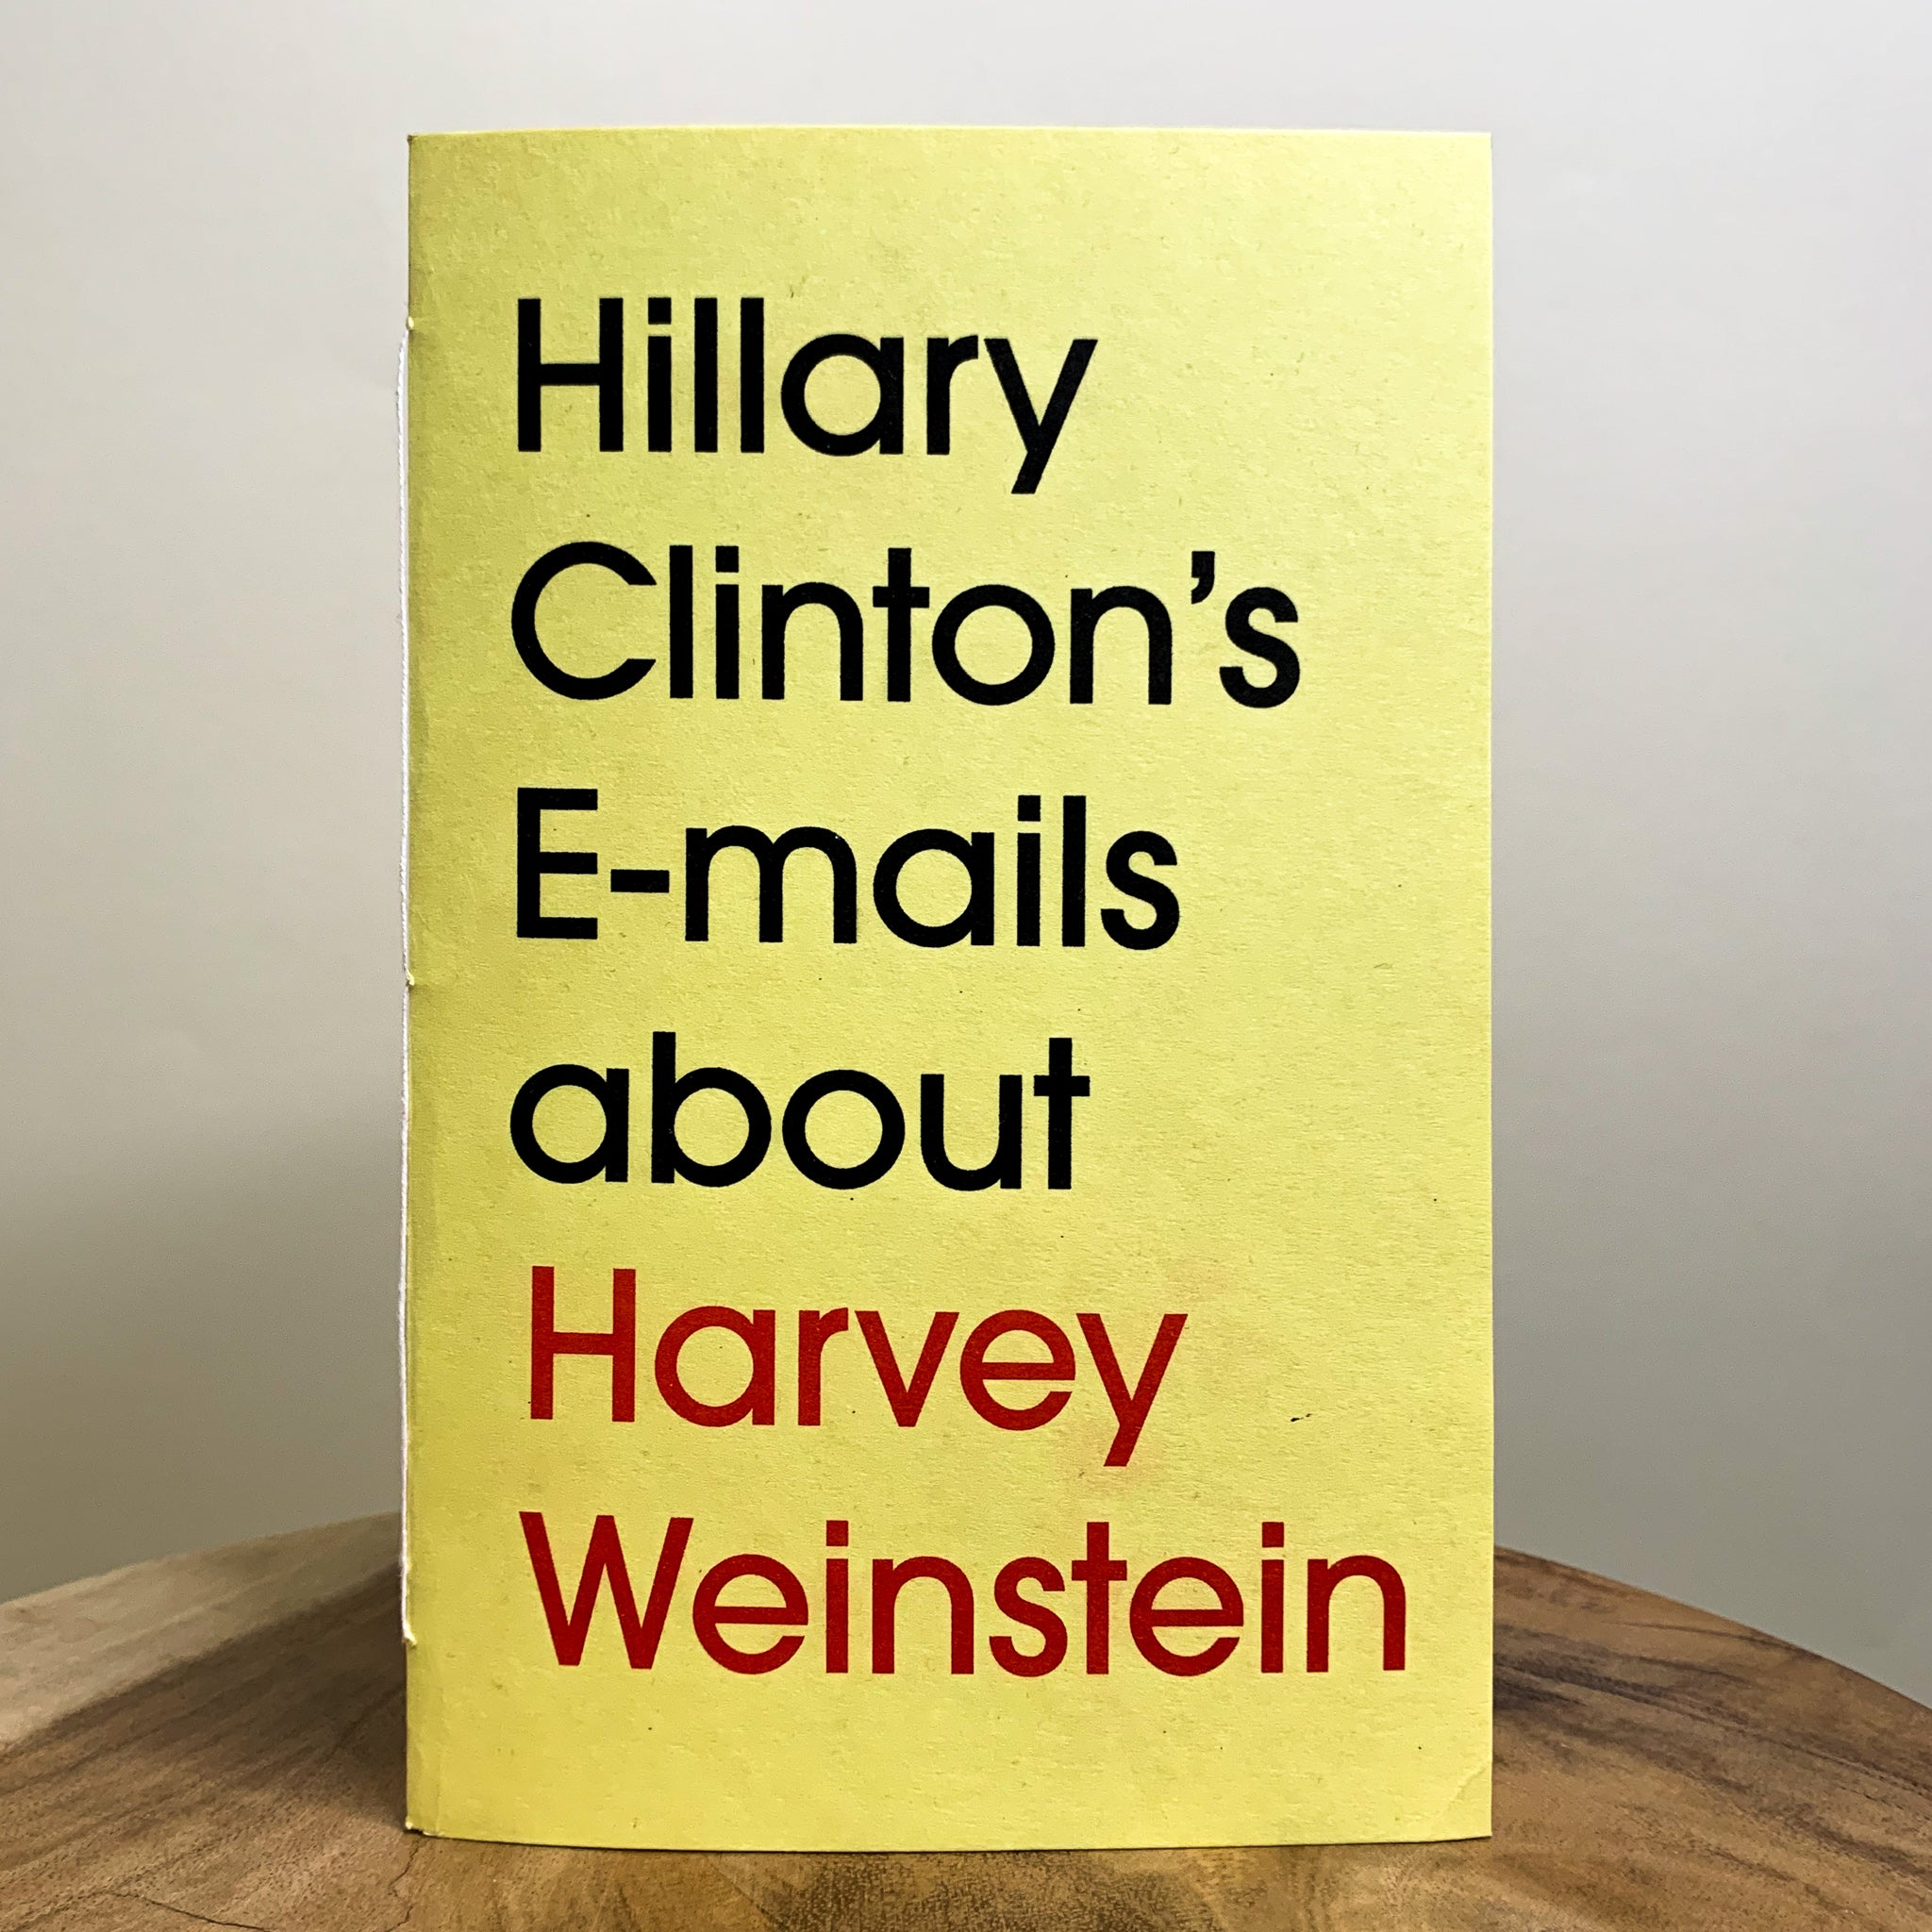 Hillary Clinton's Emails about Harvey Weinstein